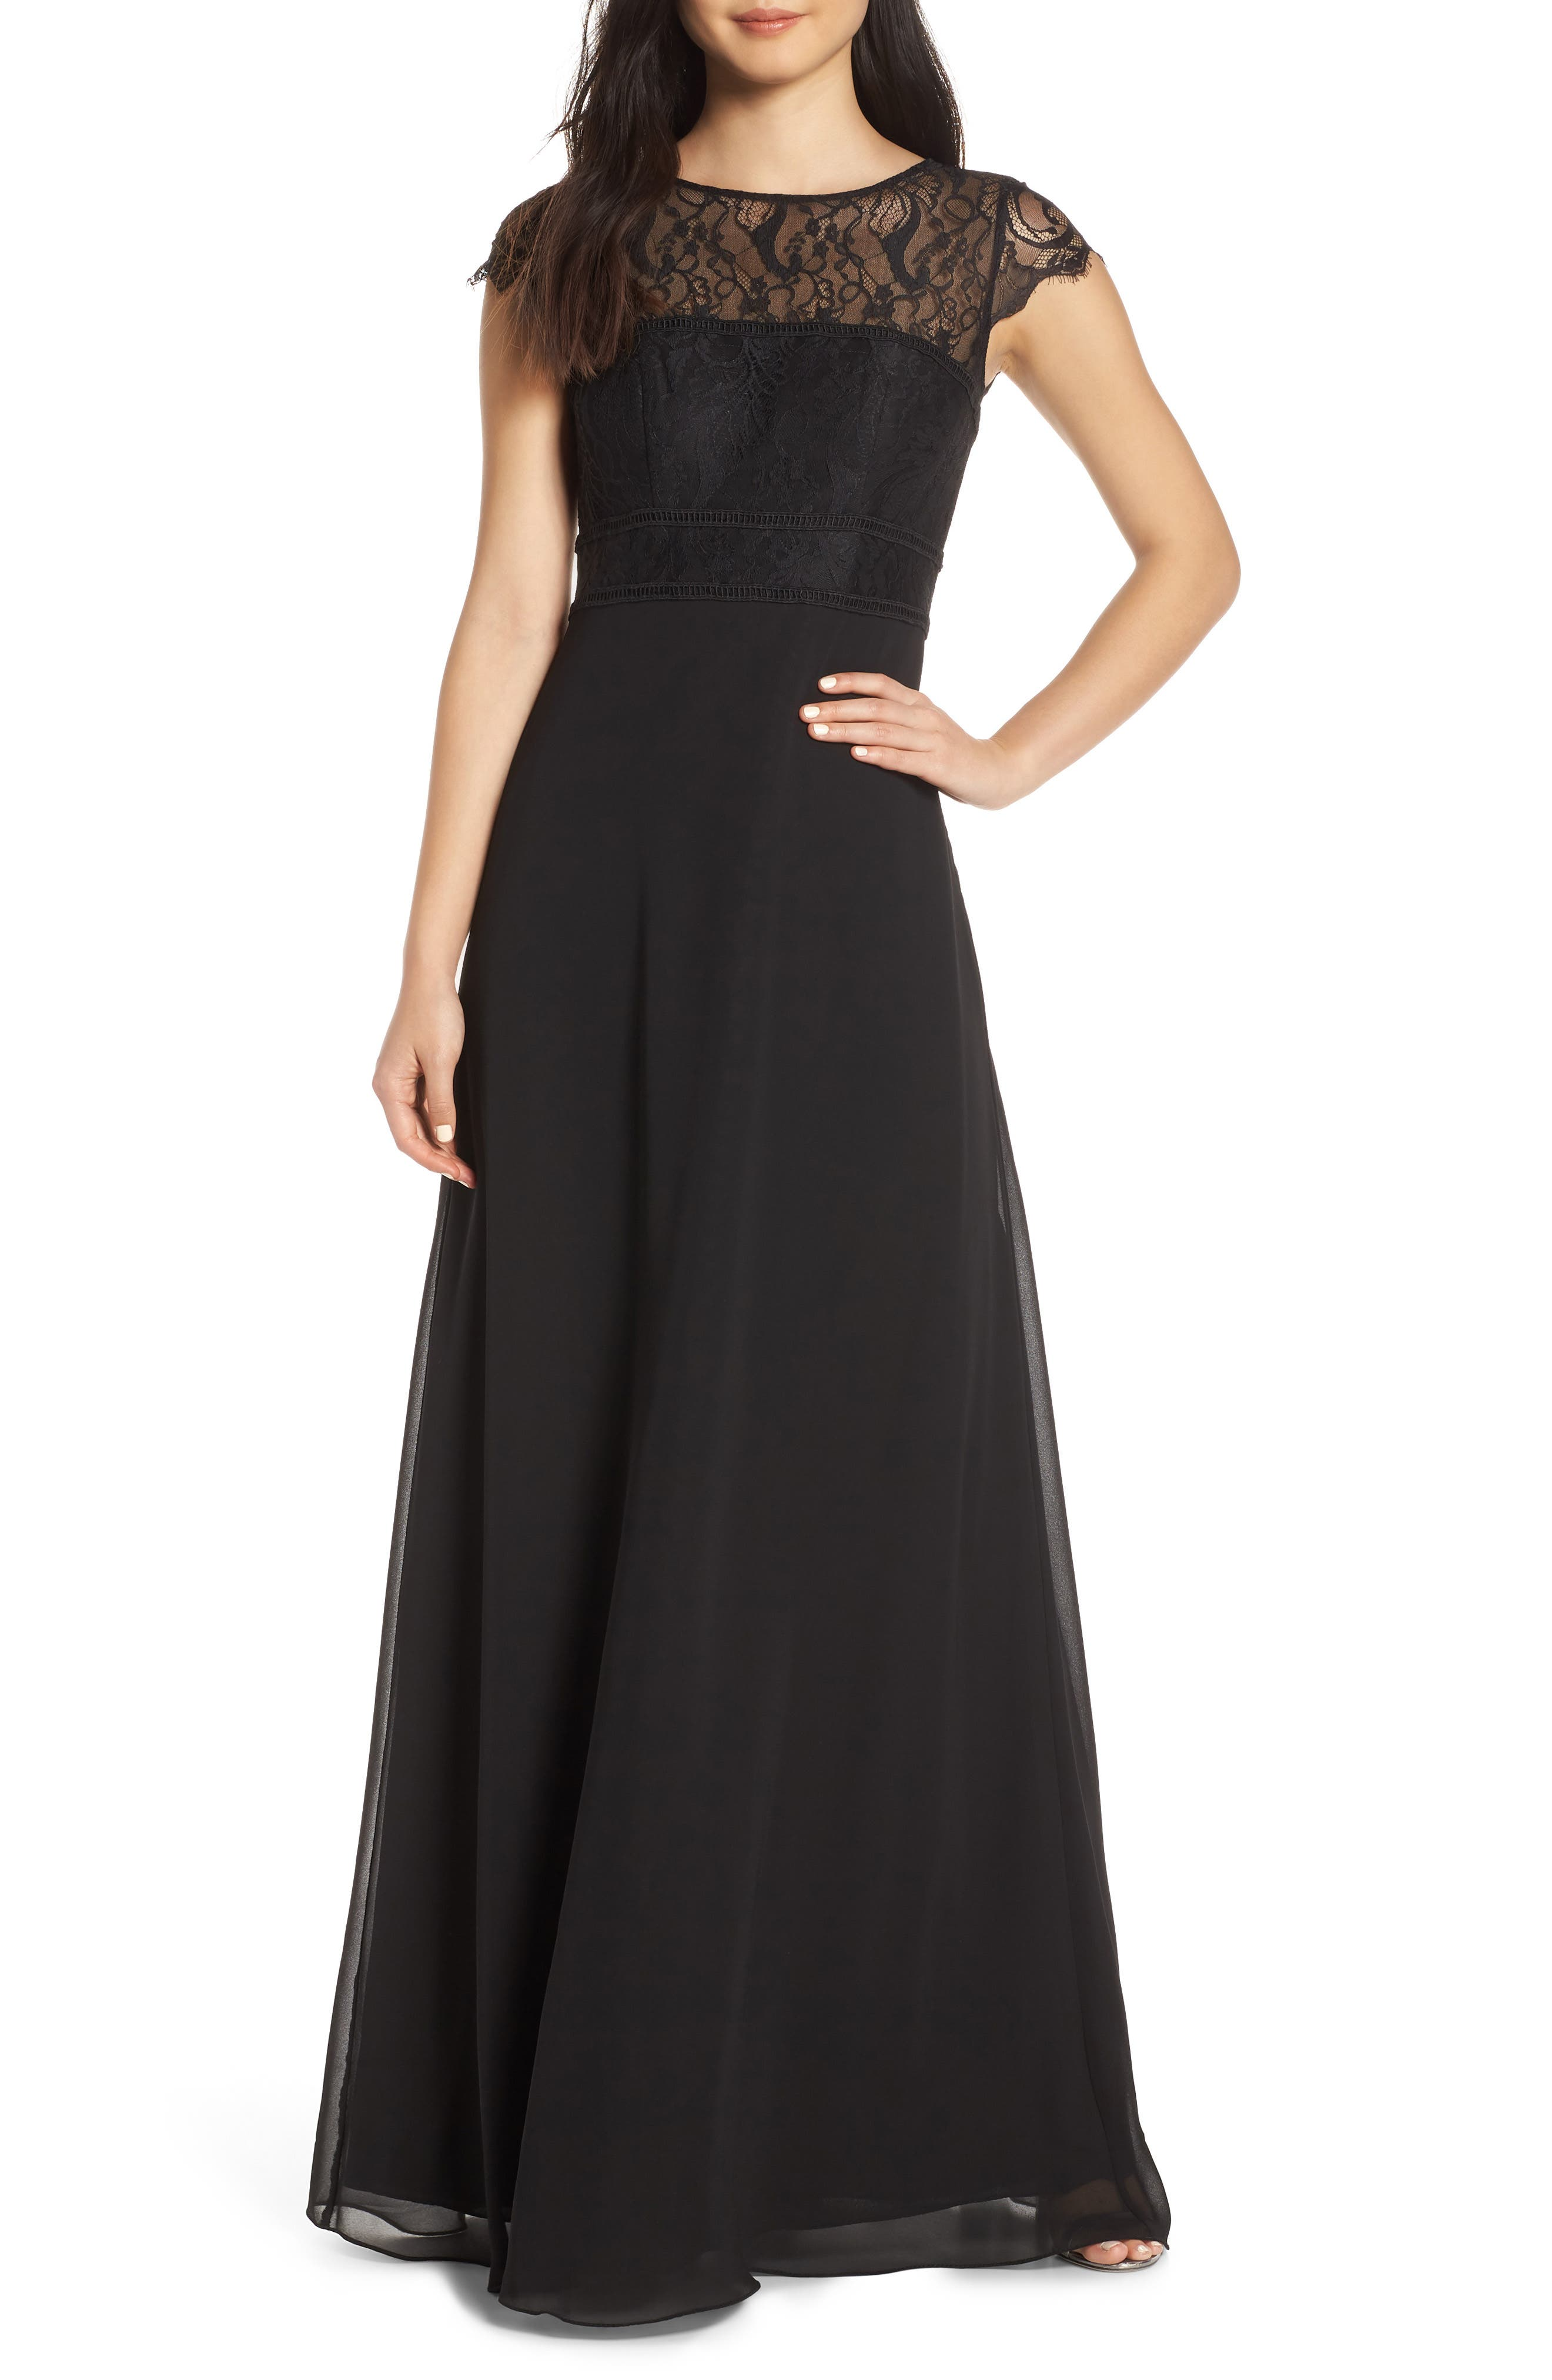 Hayley Paige Occasions Lace Bodice Chiffon Evening Dress, Black